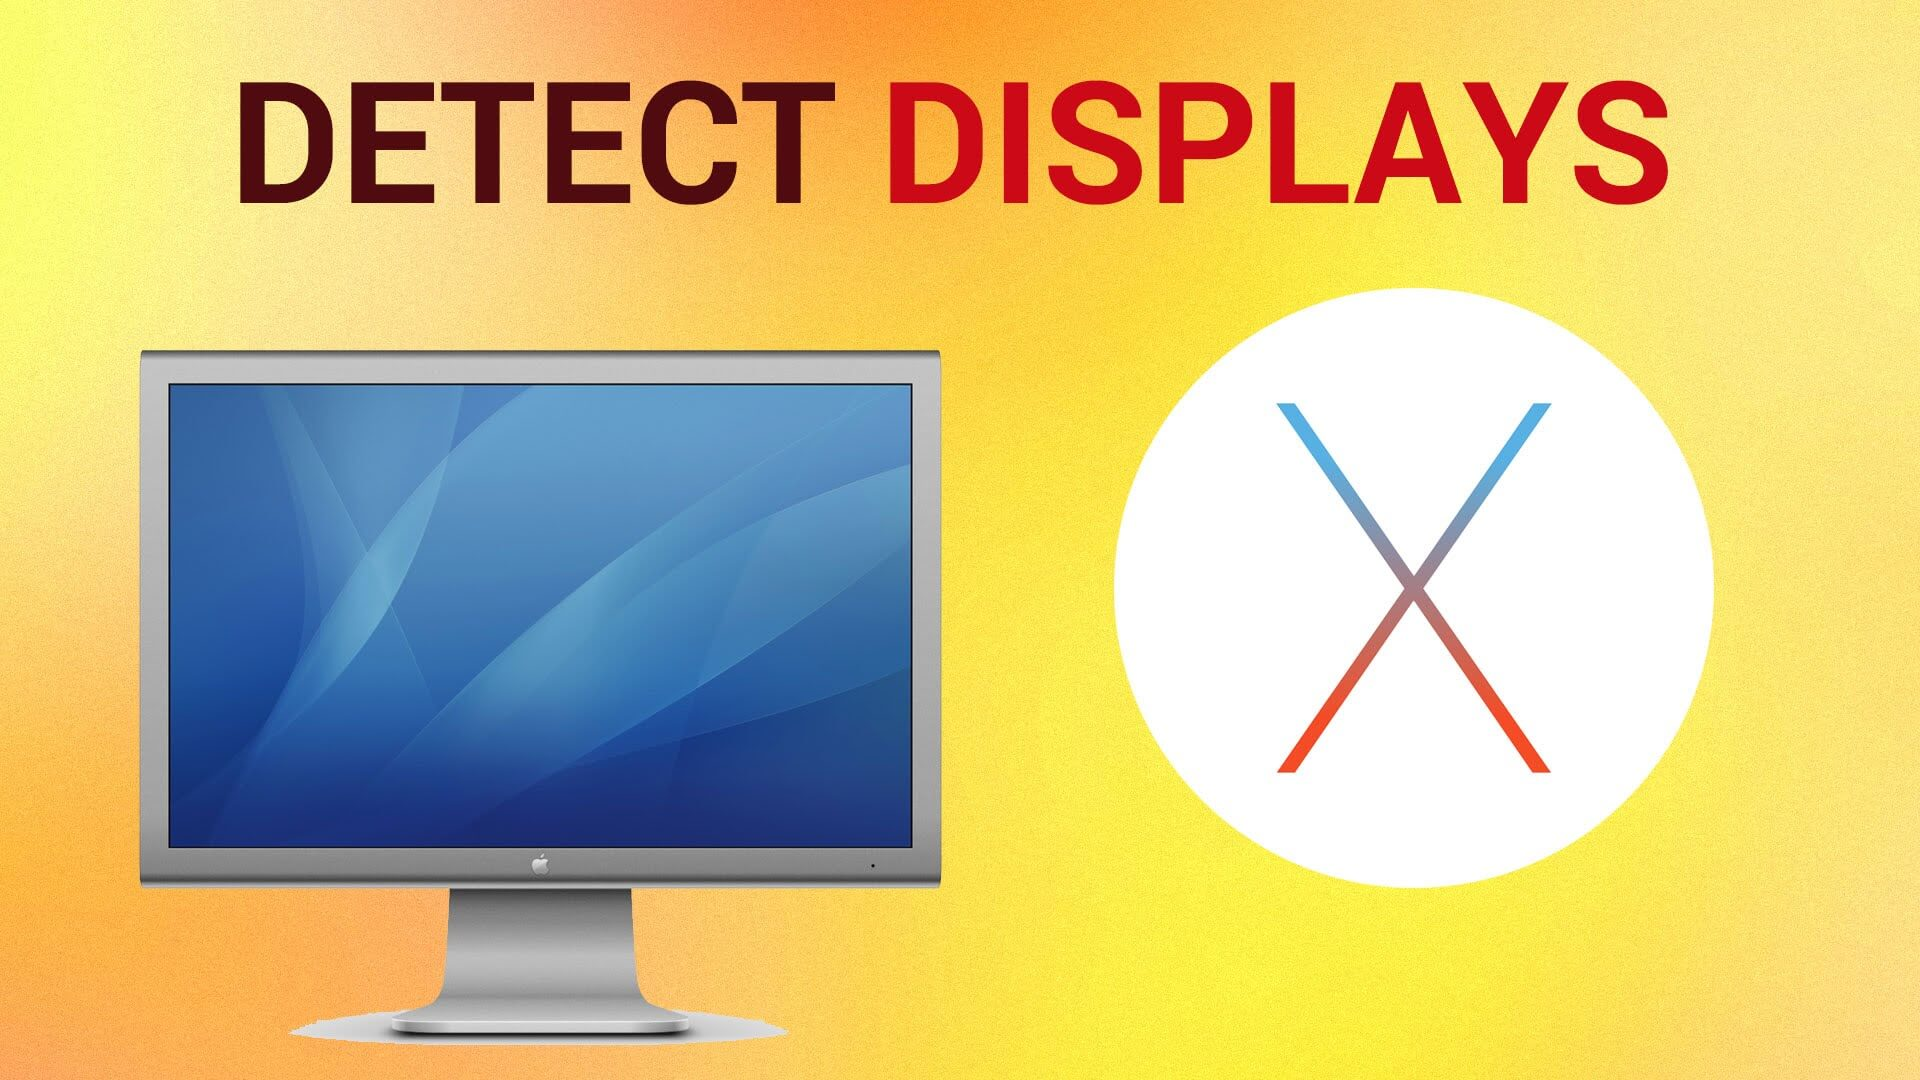 Detect Display